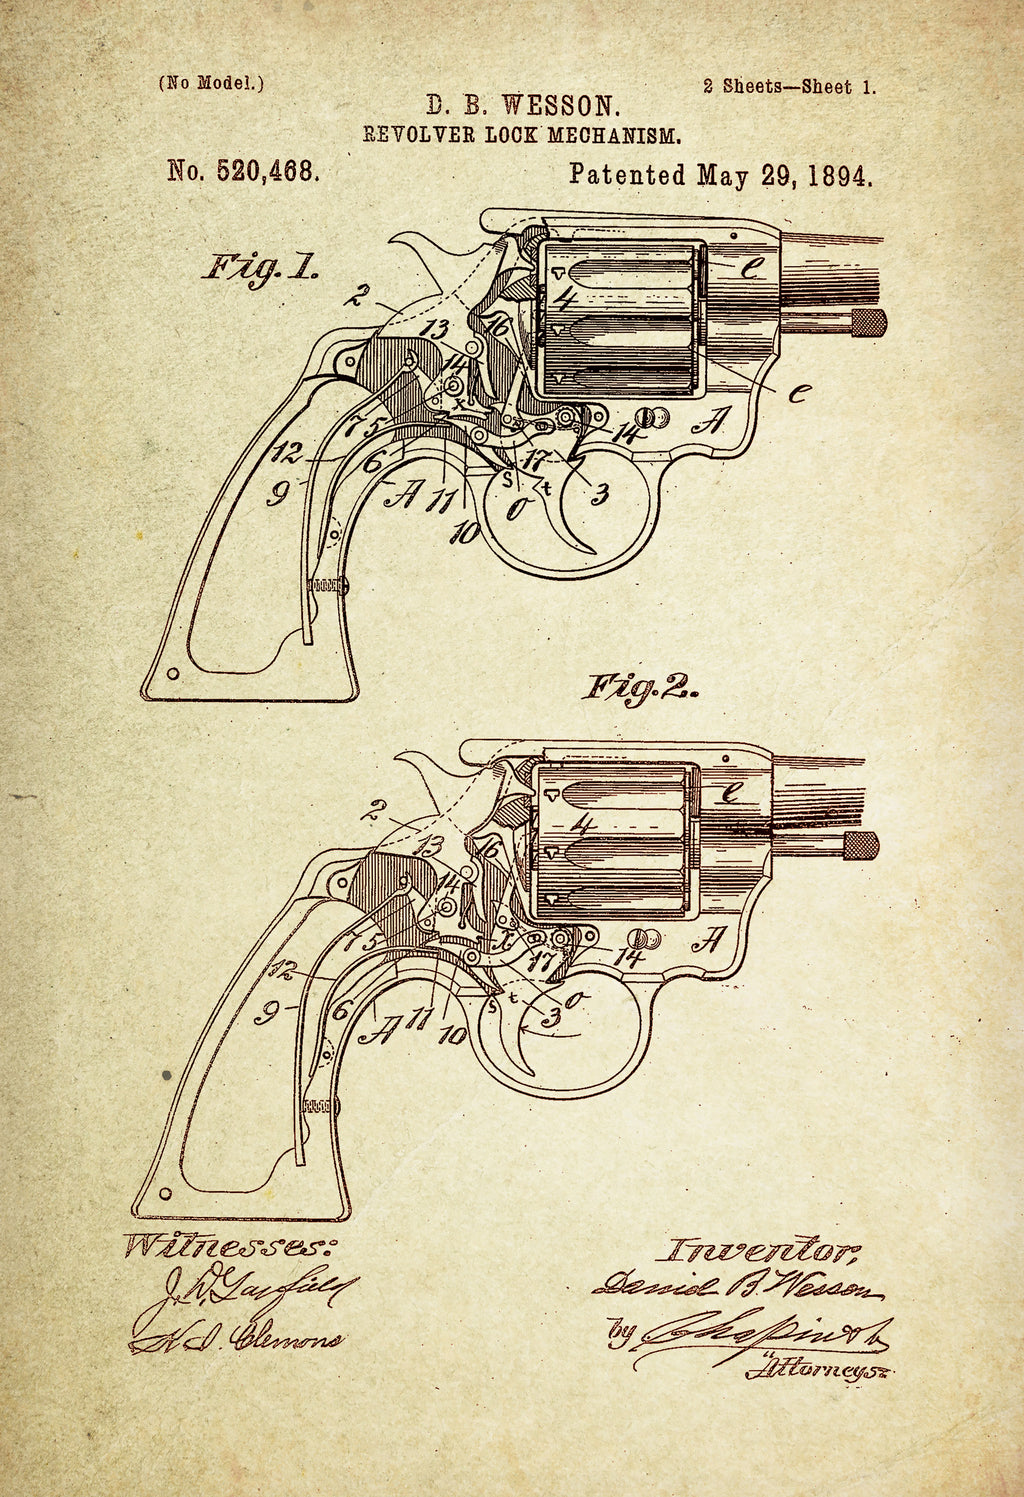 Wesson Revolver Lock Mechanism Patent Poster Wall Decor (1894 by D.B Wesson)